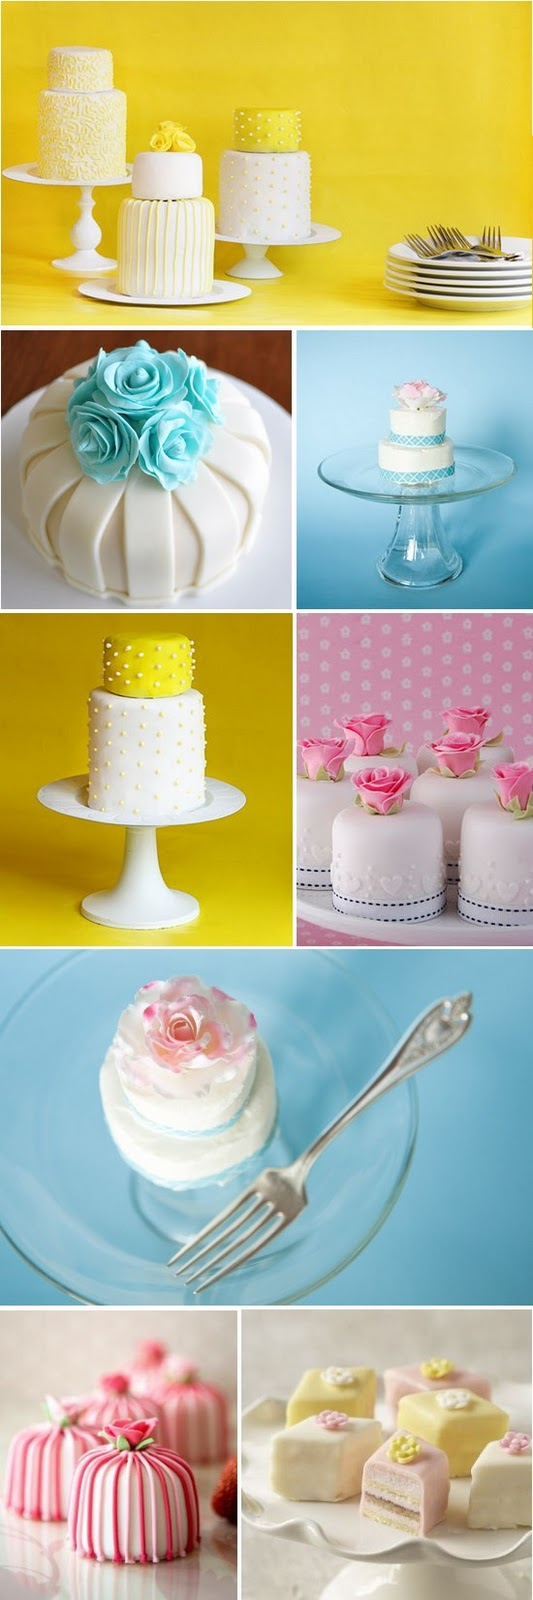 Mini wedding cake collection